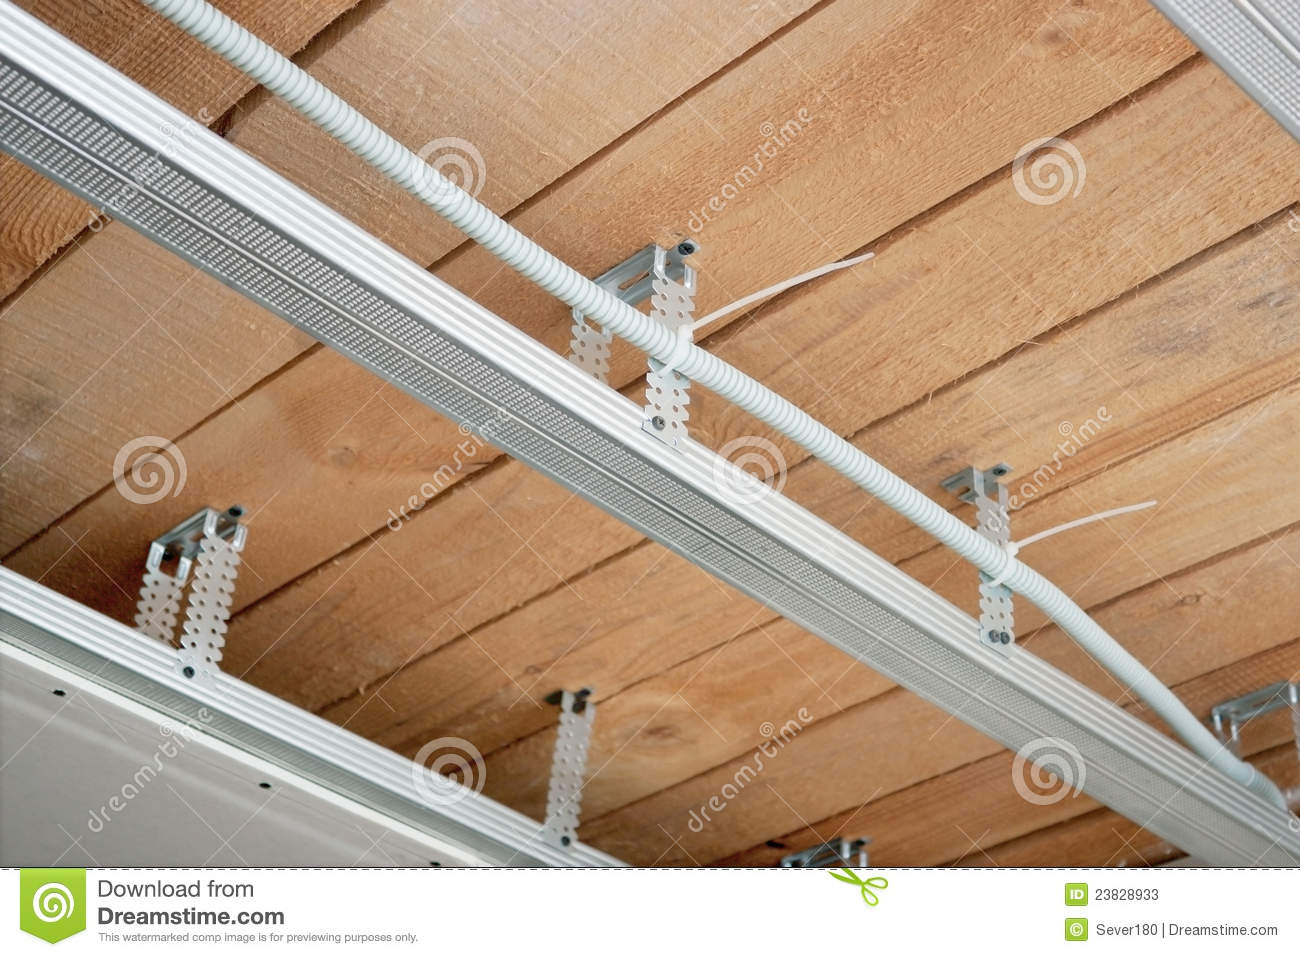 Electrical Wiring In A Suspended Ceiling Stock Image - Image of ...